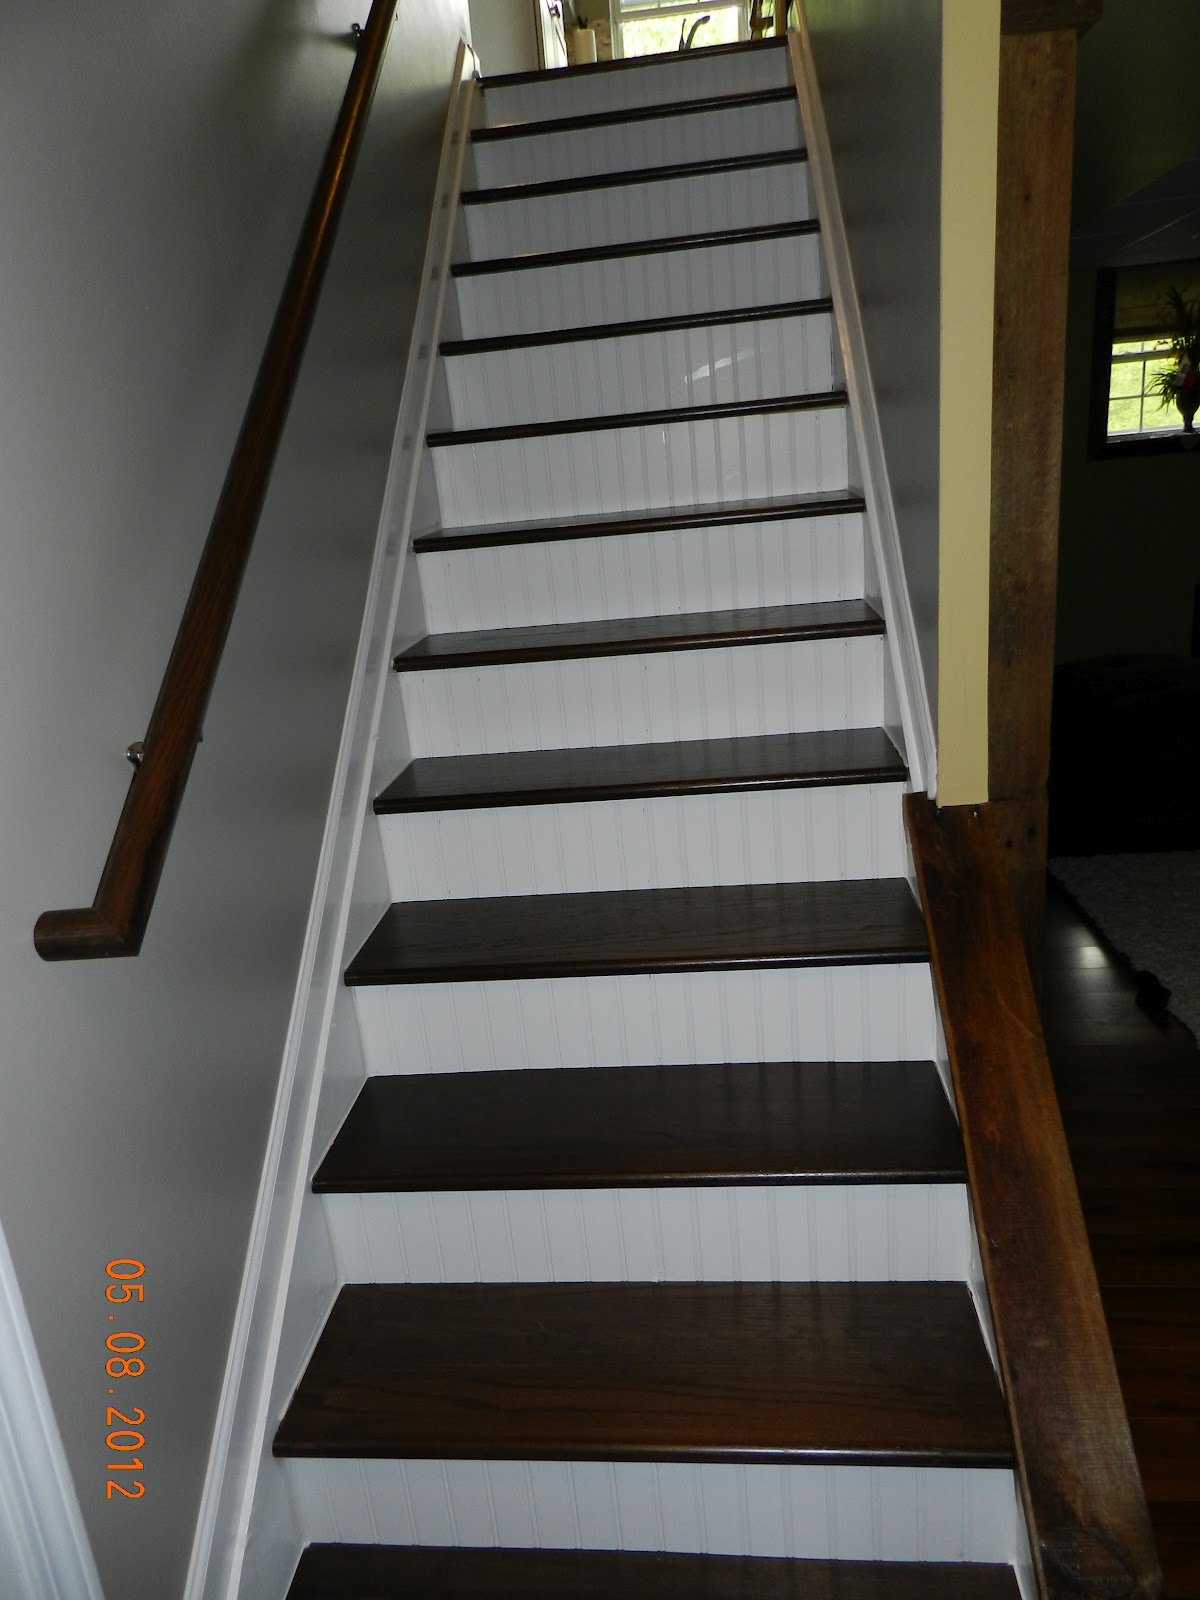 basement stairs displaying 17 images for dark basement stairs toolbar